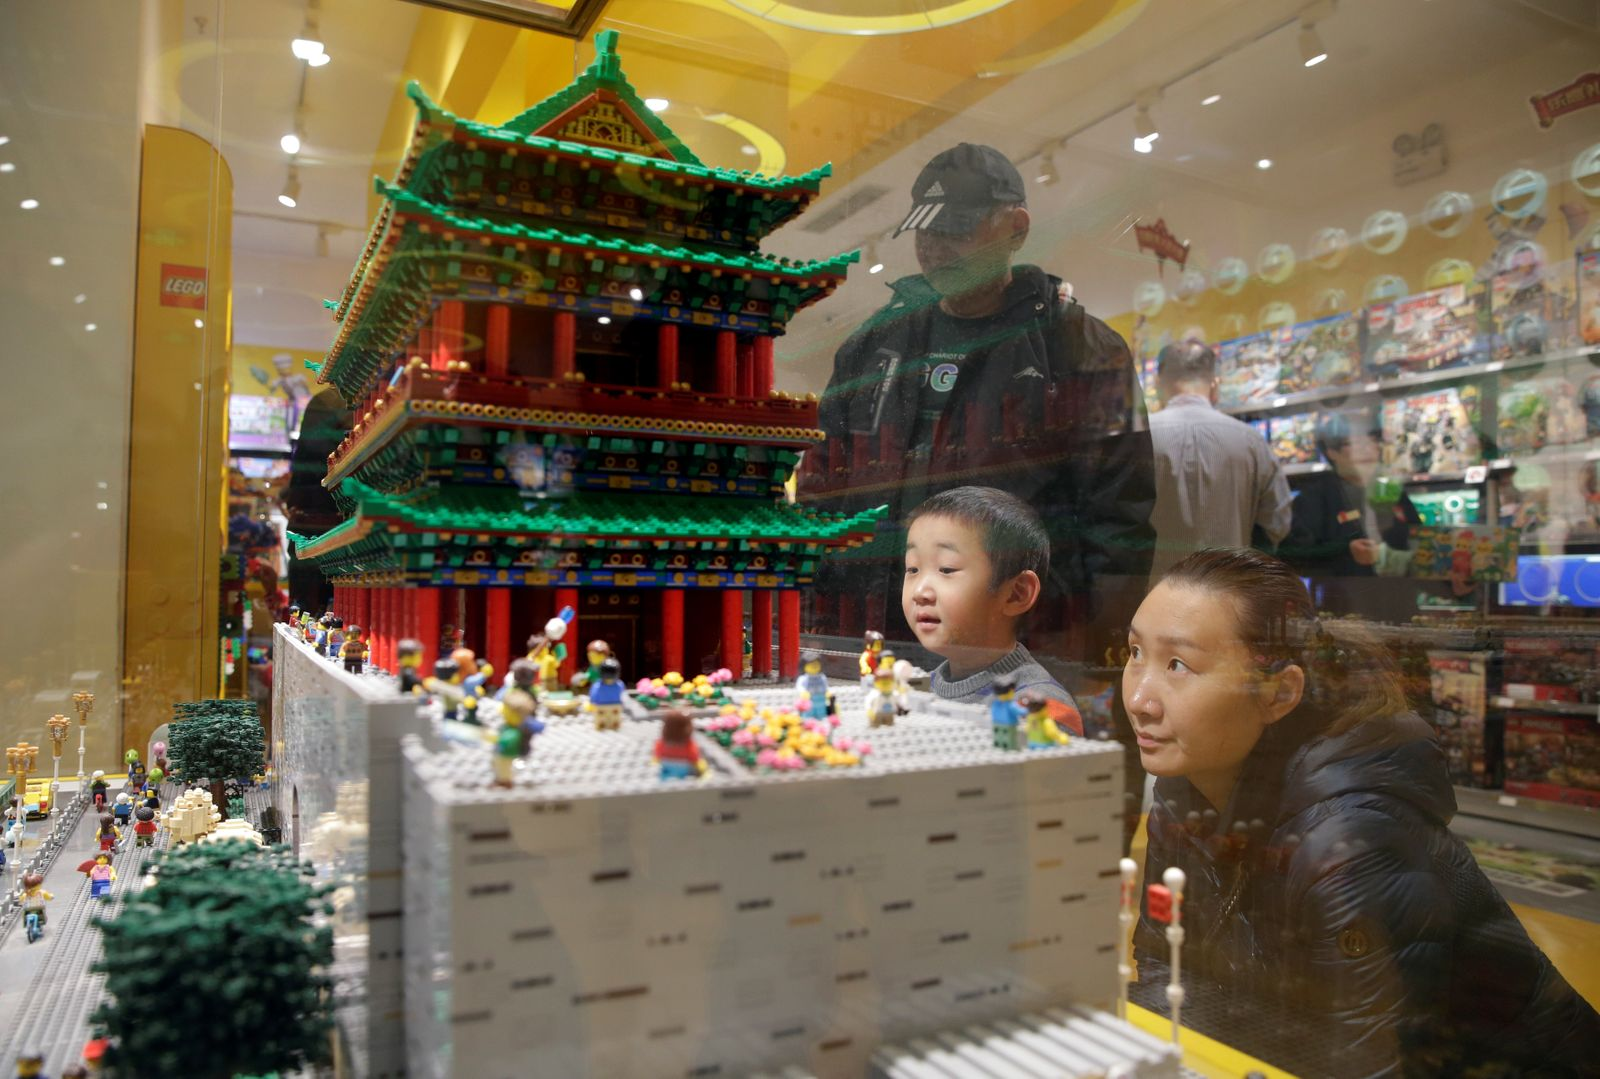 A boy and his mother look at the Zhengyang Gate Tower of Forbidden City made with Lego bricks at a Lego store in Beijing